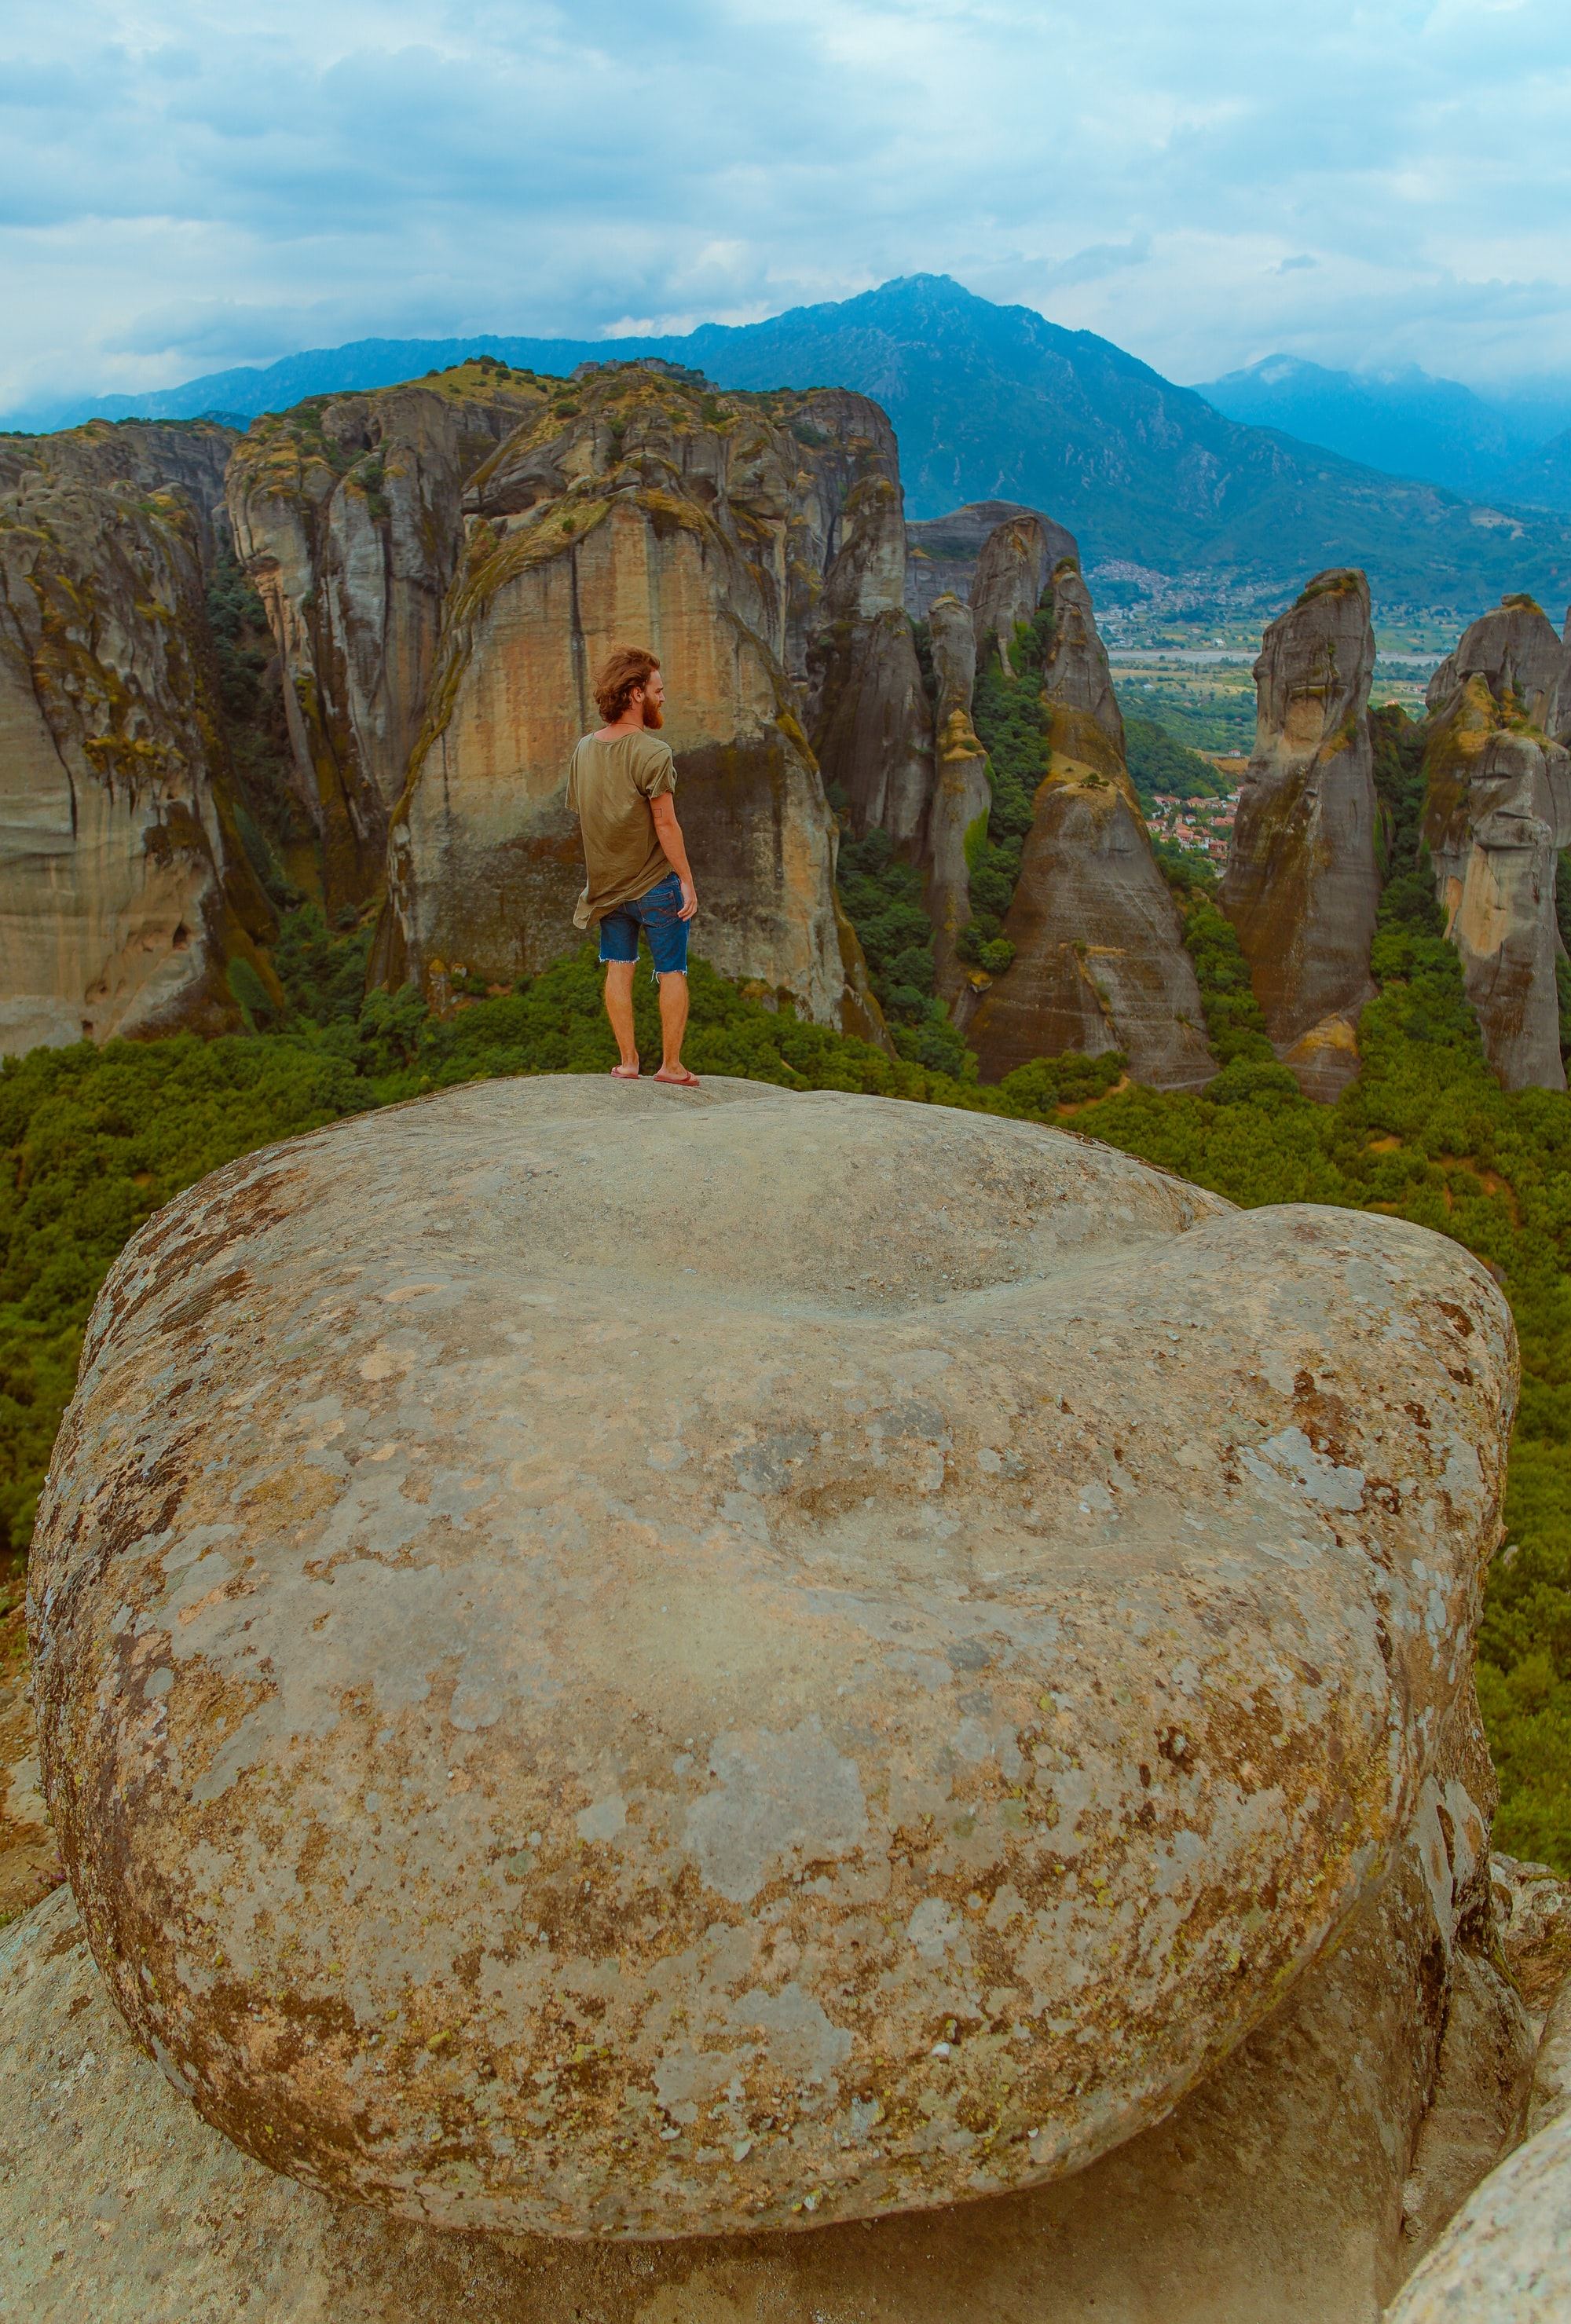 The most stunning viewpoint of Meteora